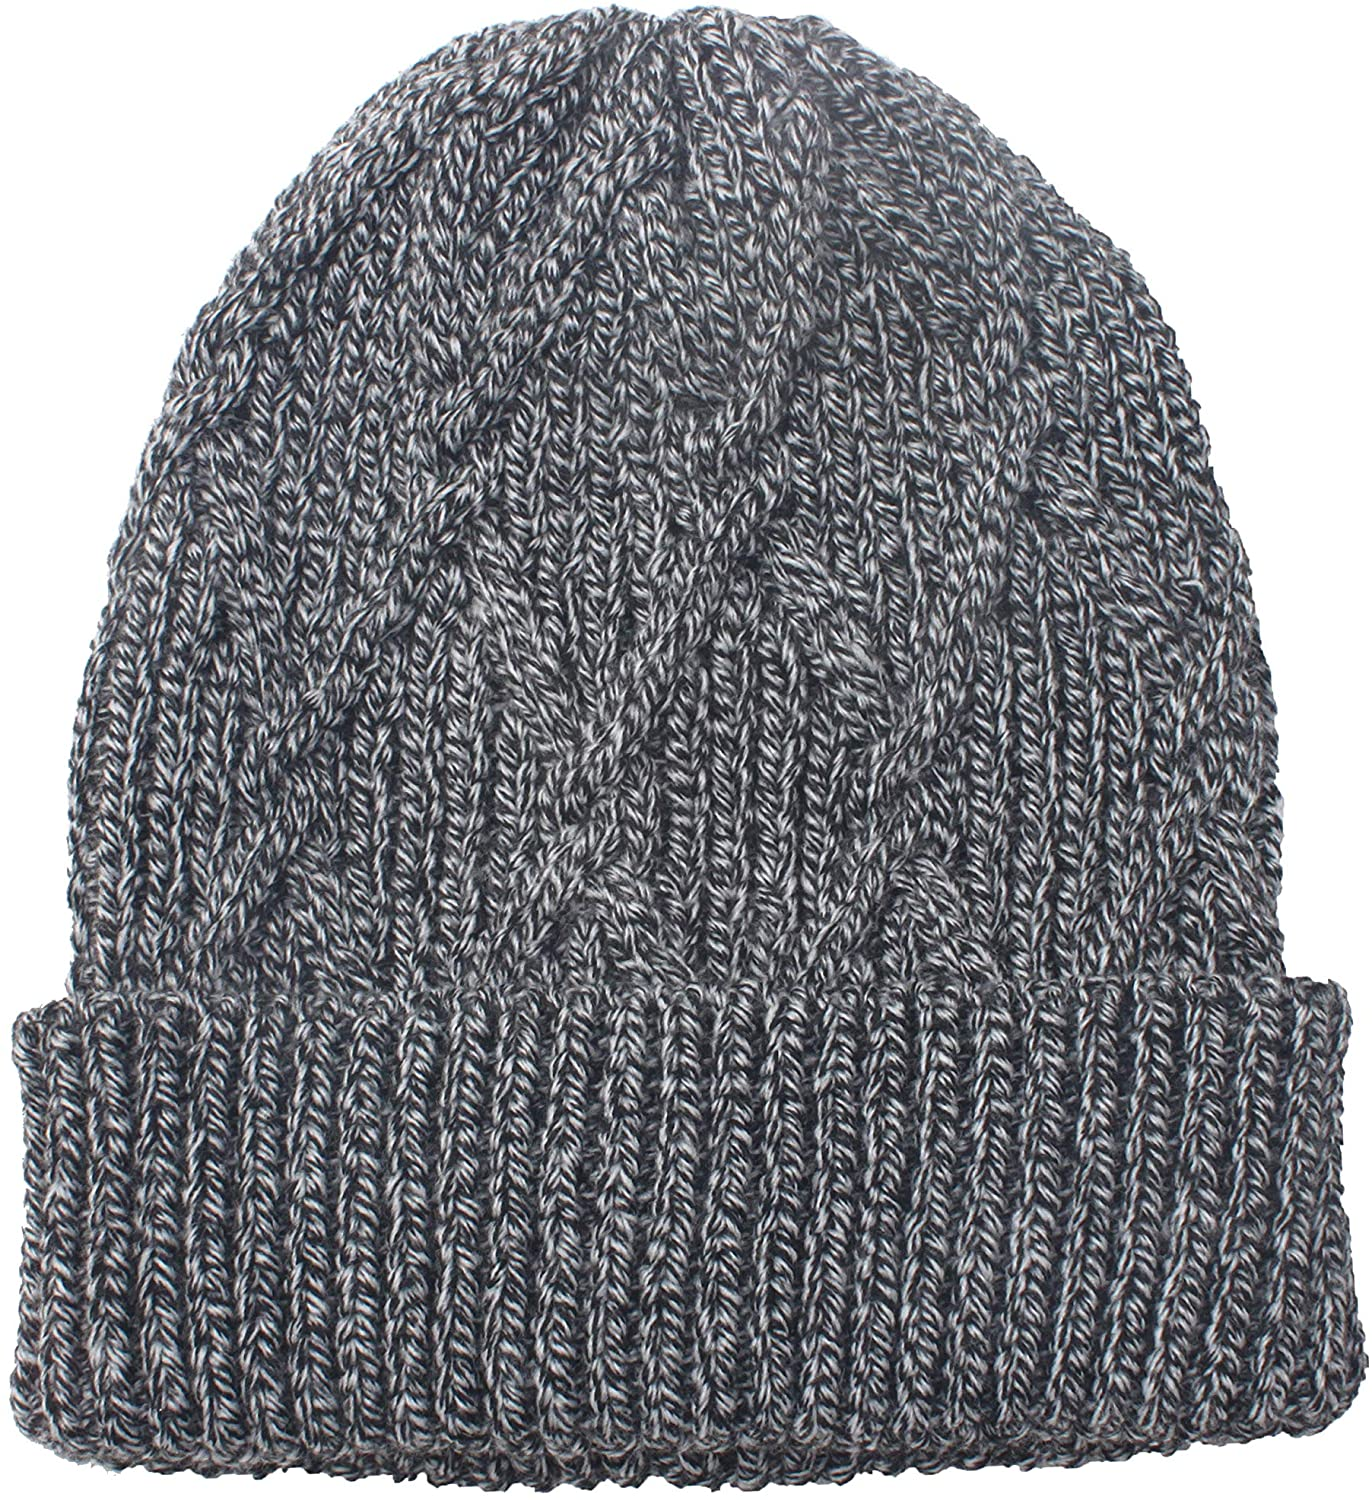 UNDER ZERO UO Men's Winter Navy Cable Knitted Beanie Hat